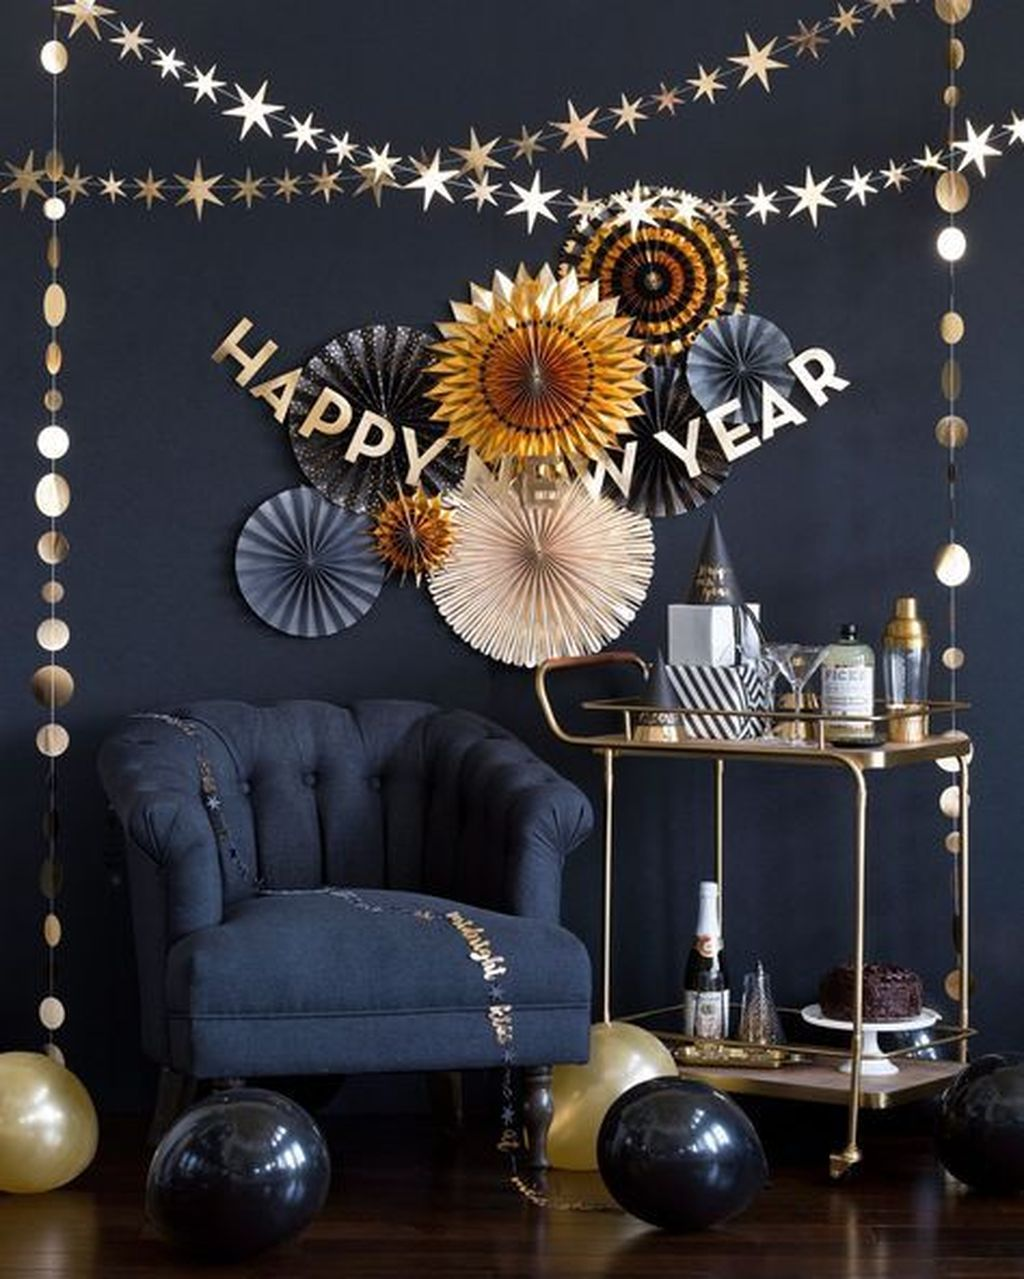 30+ Best New Years Eve Decor Ideas For Home Decor (With ...